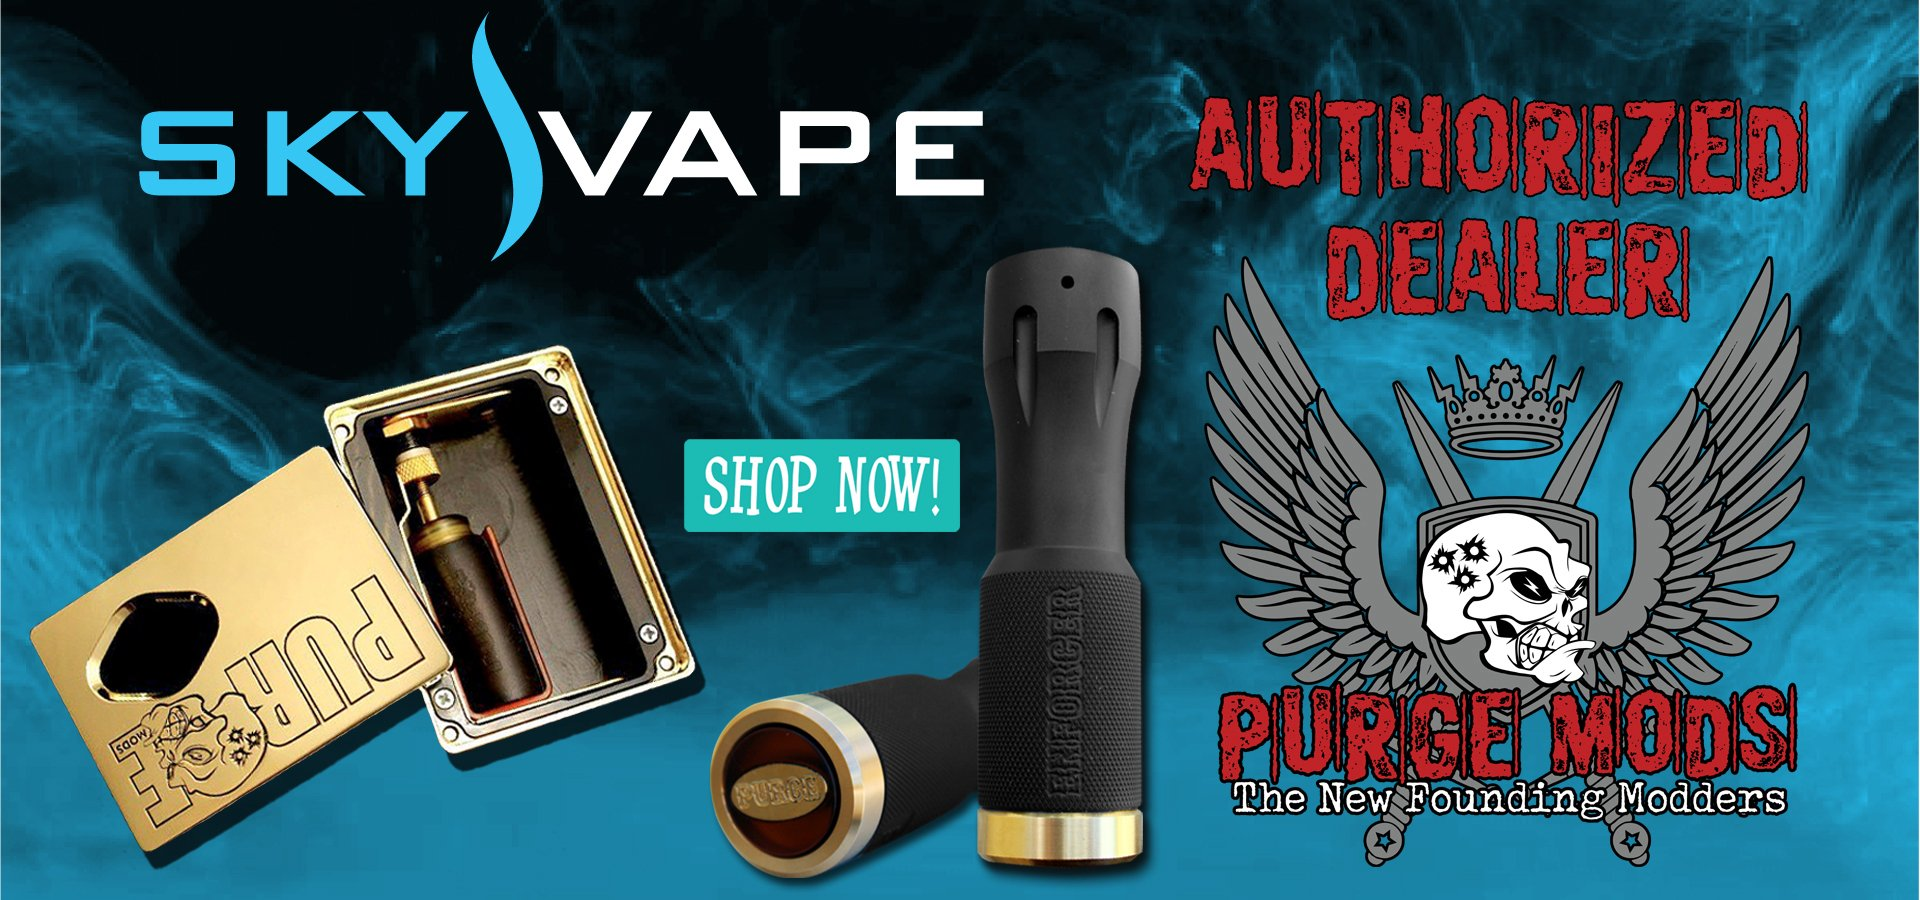 Sky Vape Purge Mods Authorized Dealer